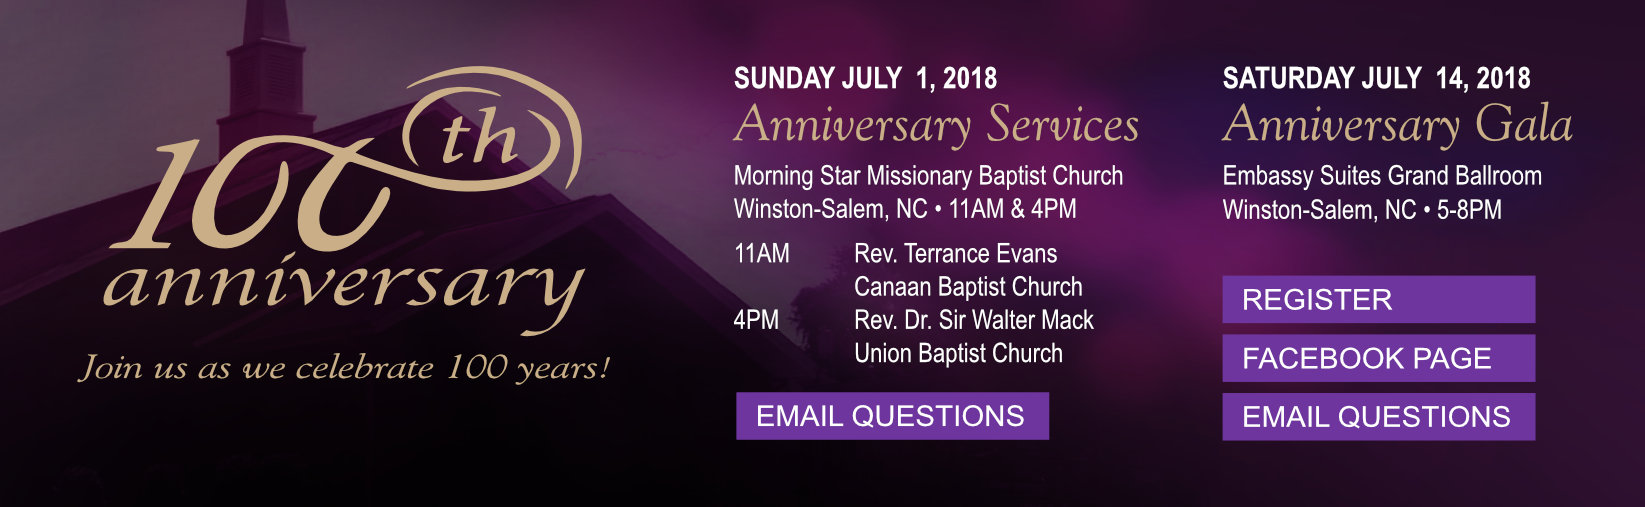 100th Anniversary - July 1, 2018 Anniversary Services and Saturday, July 14, 2018 Anniversary Gala